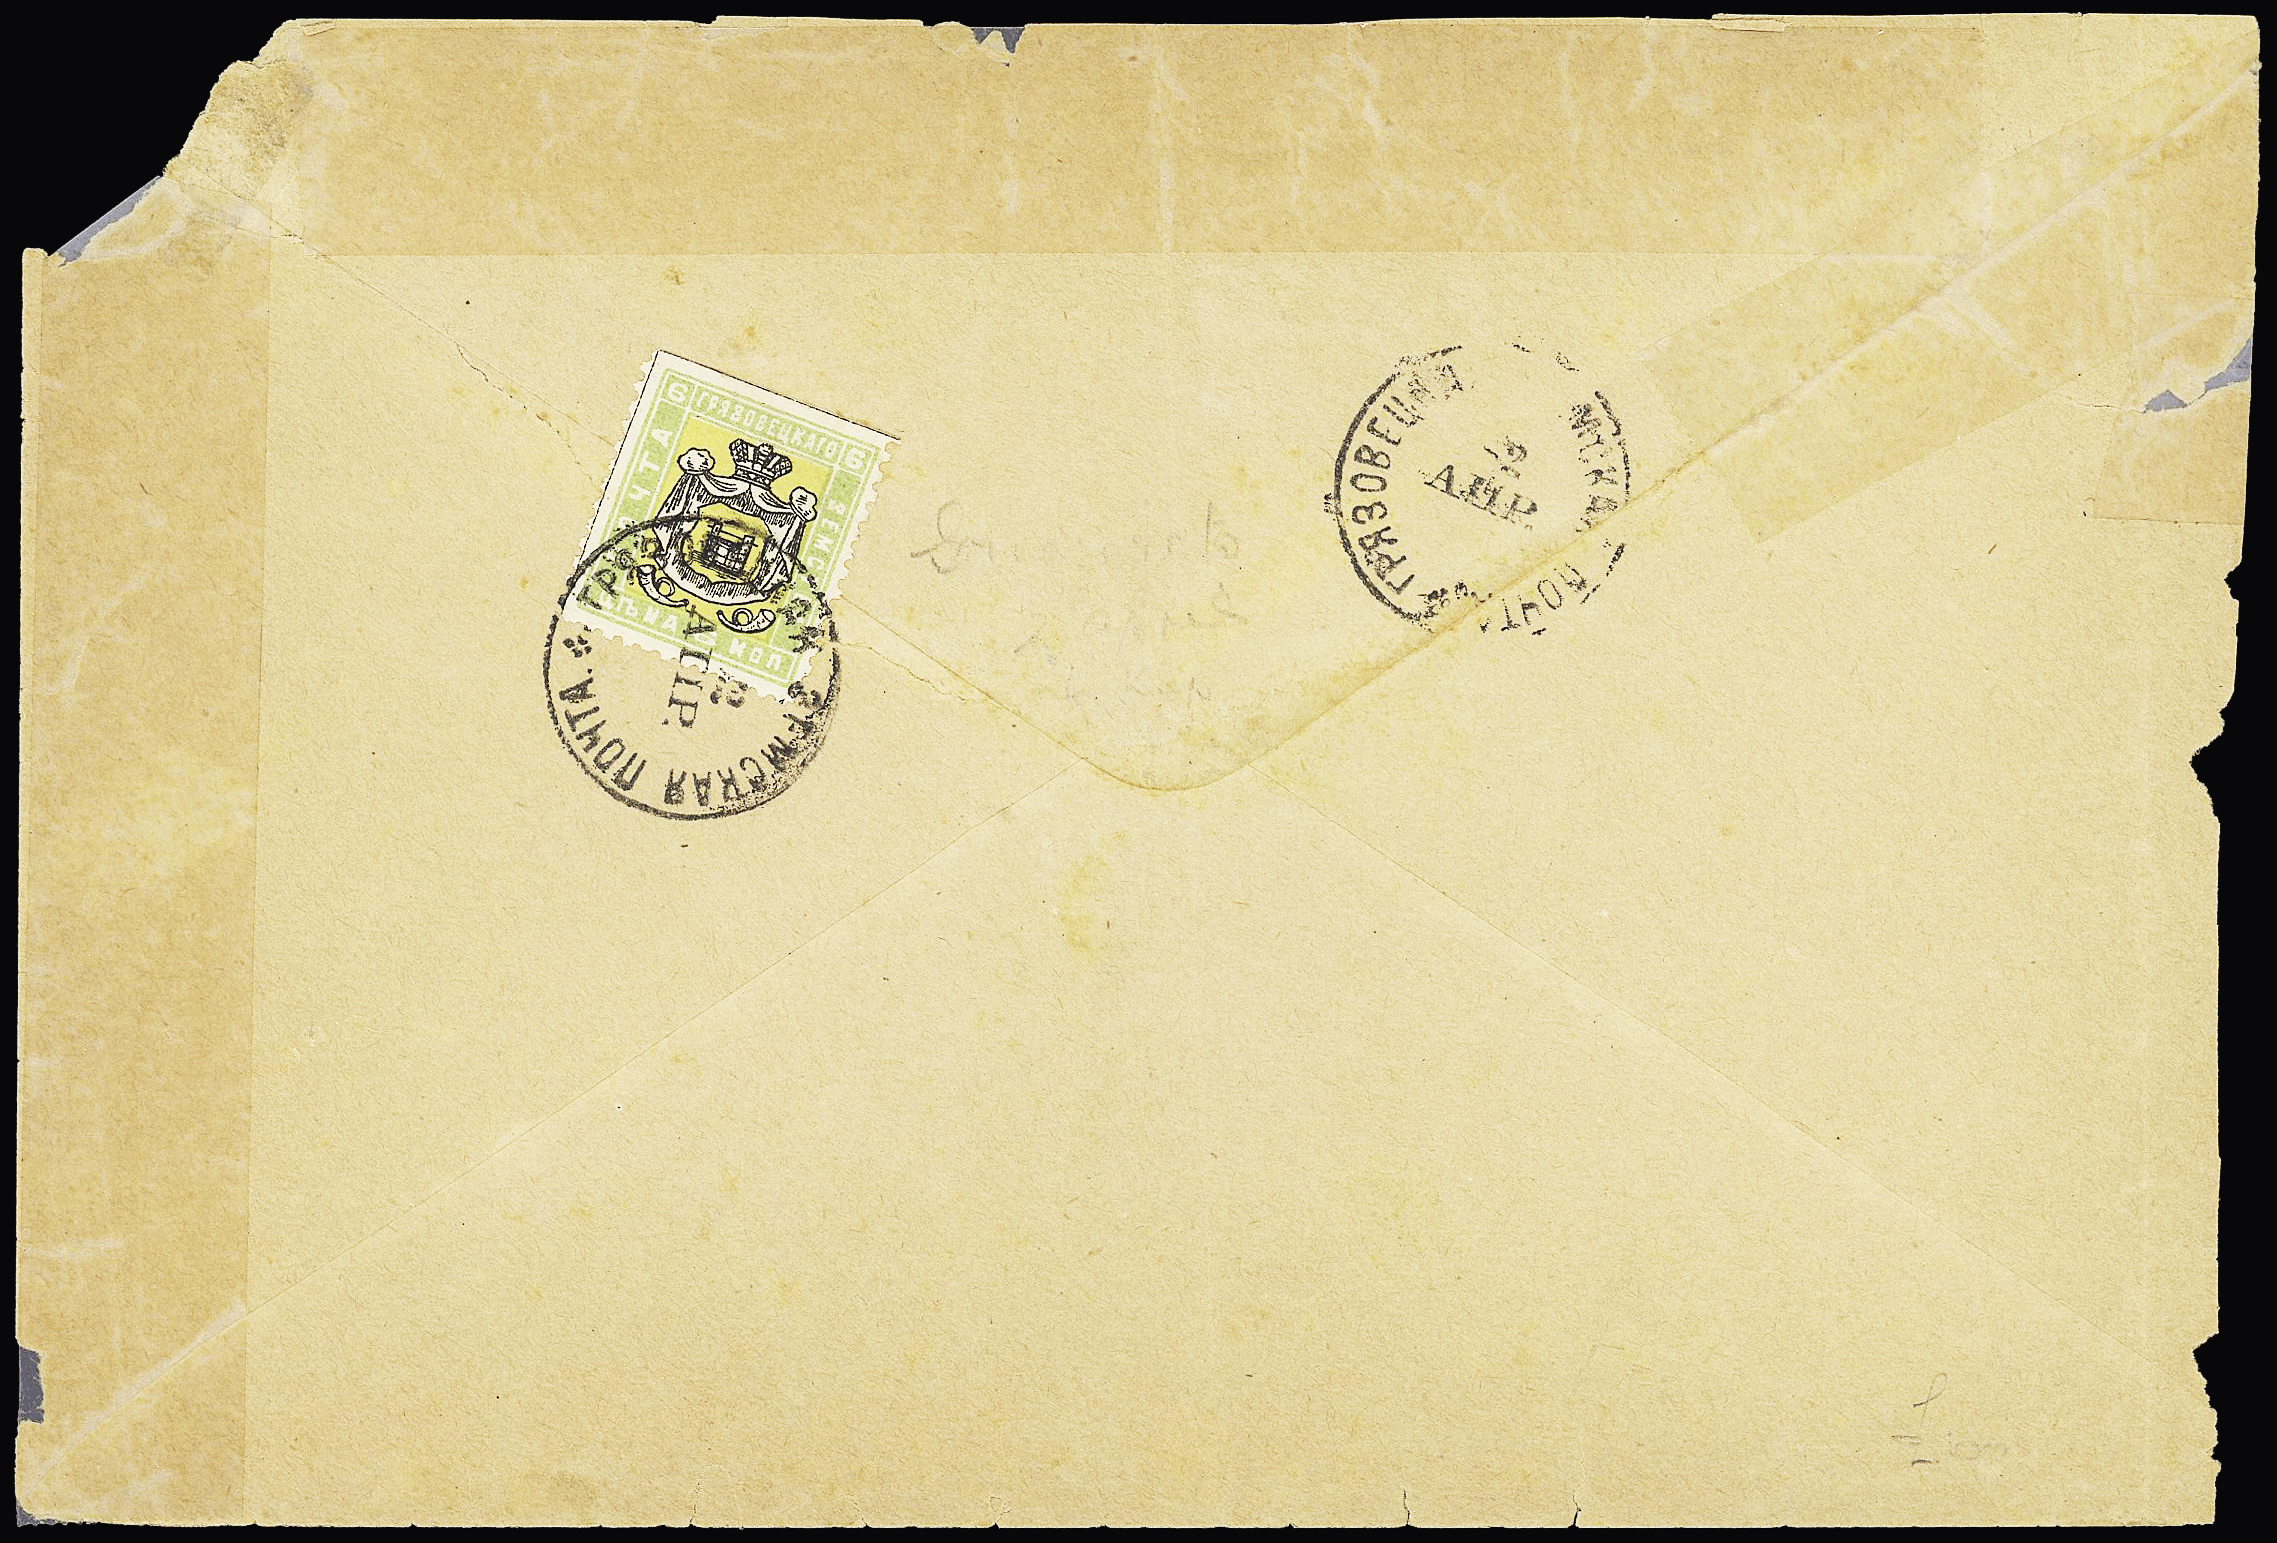 Lot 451 - Eastern Europe » RUSSIA - ZEMSTVOS » Gryazovets (Vologda Government)  -  Le Timbre Classique SA SALE ON OFFERS N ° 37 PARIS